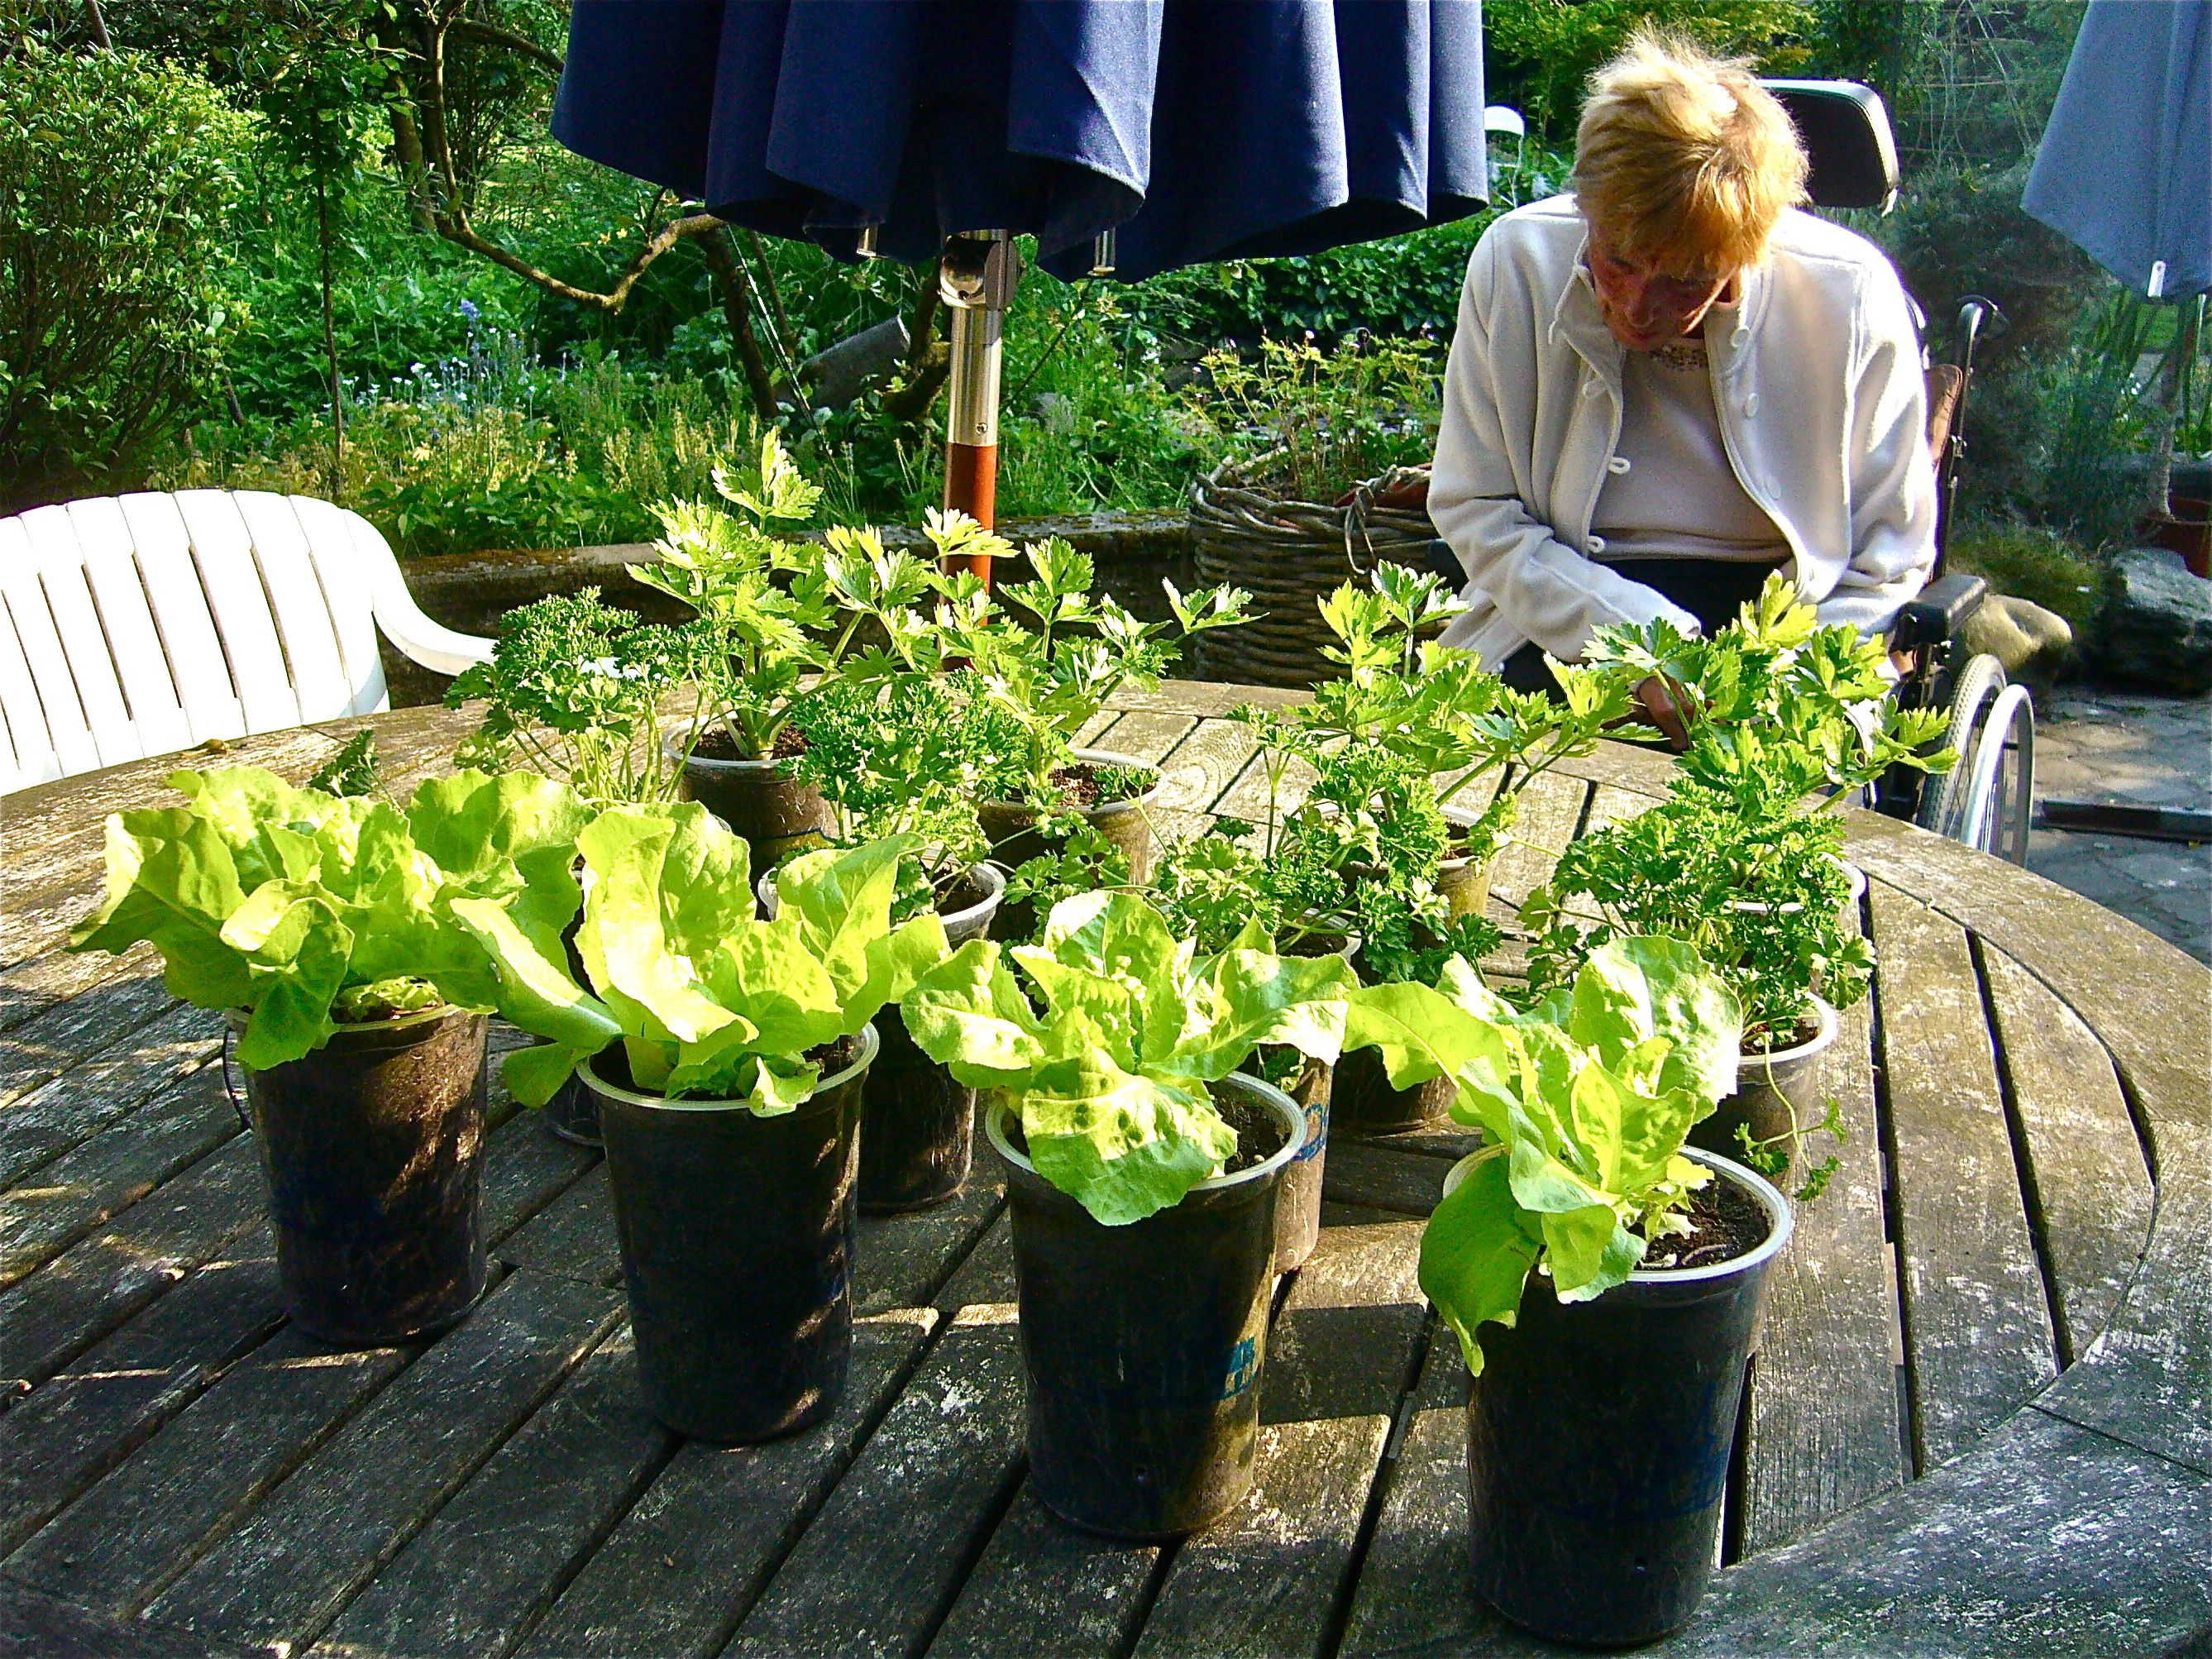 Kitchen Garden In Pots - Use recycled containers like yogurt pots or cups for a table kitchen garden photo wvc